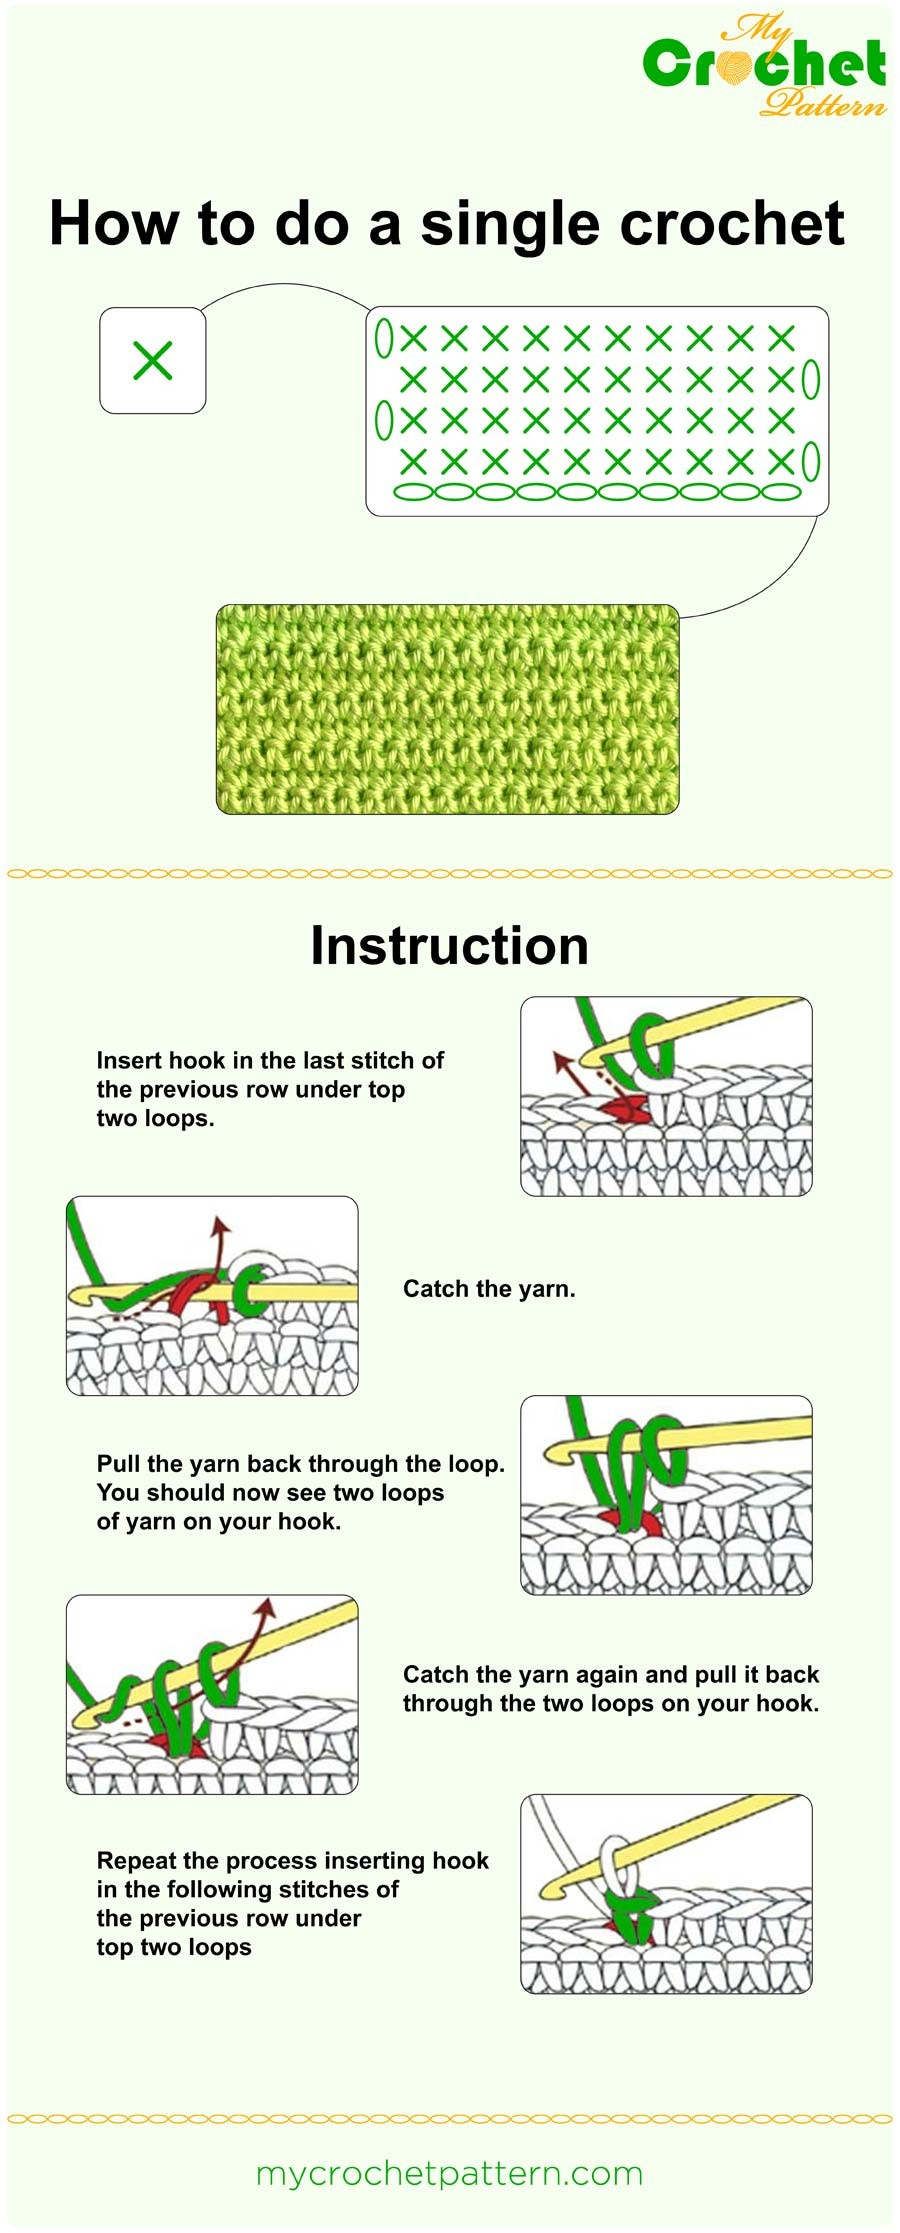 how to do a single crochet - infographic